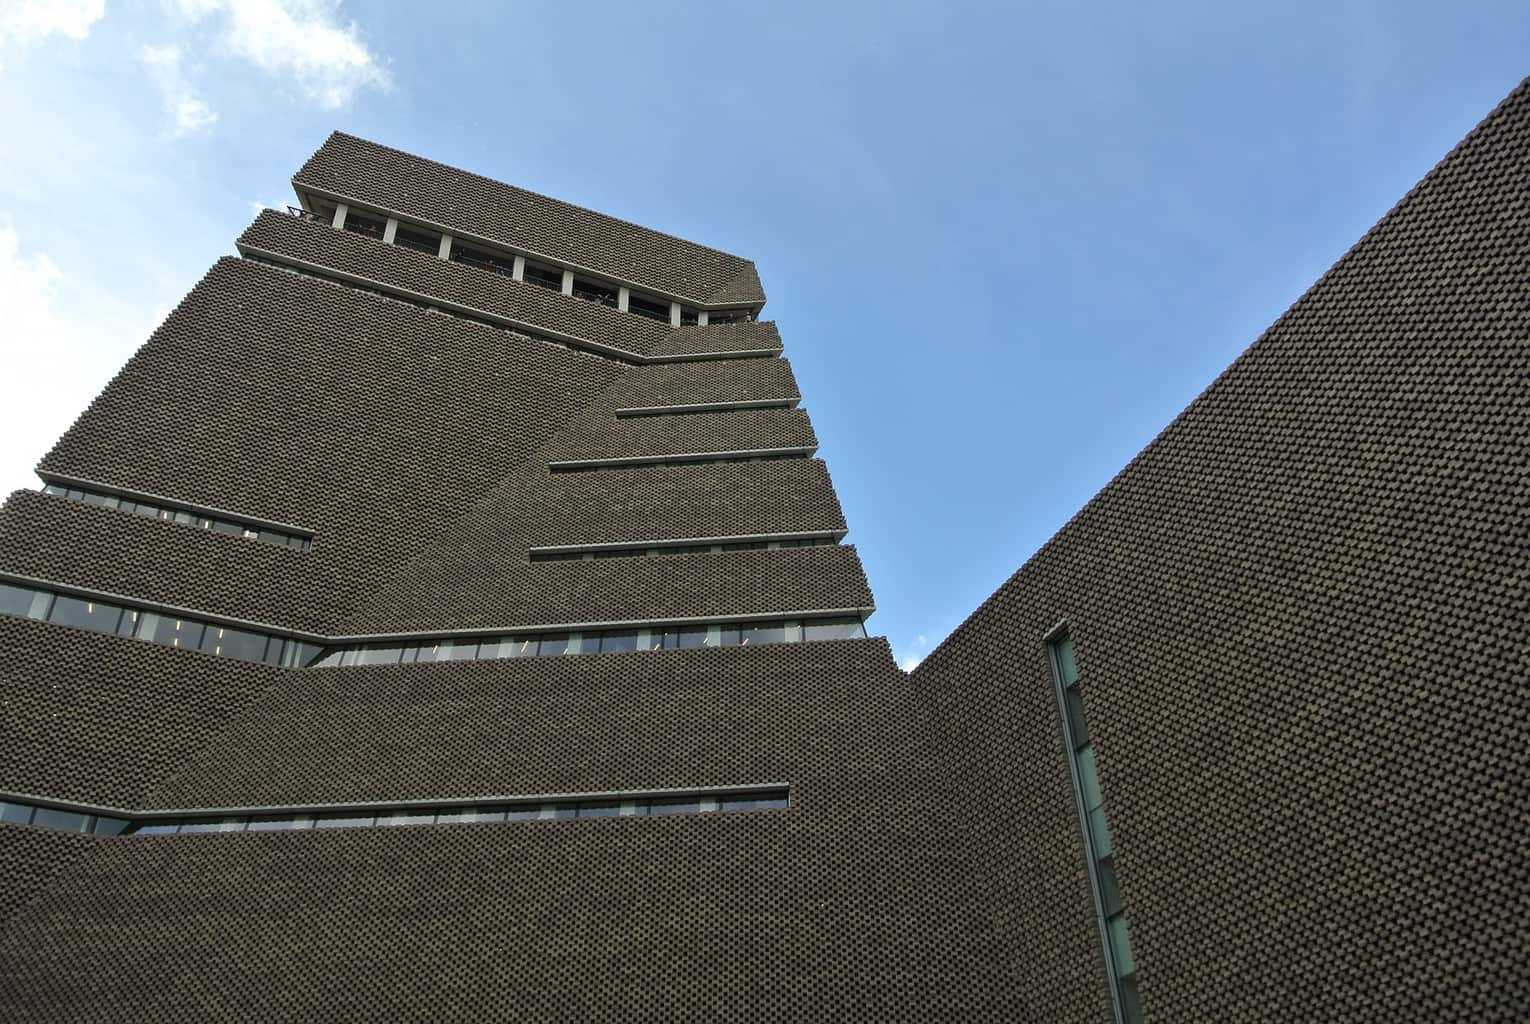 Looking up at the Tate Modern in London from the outside